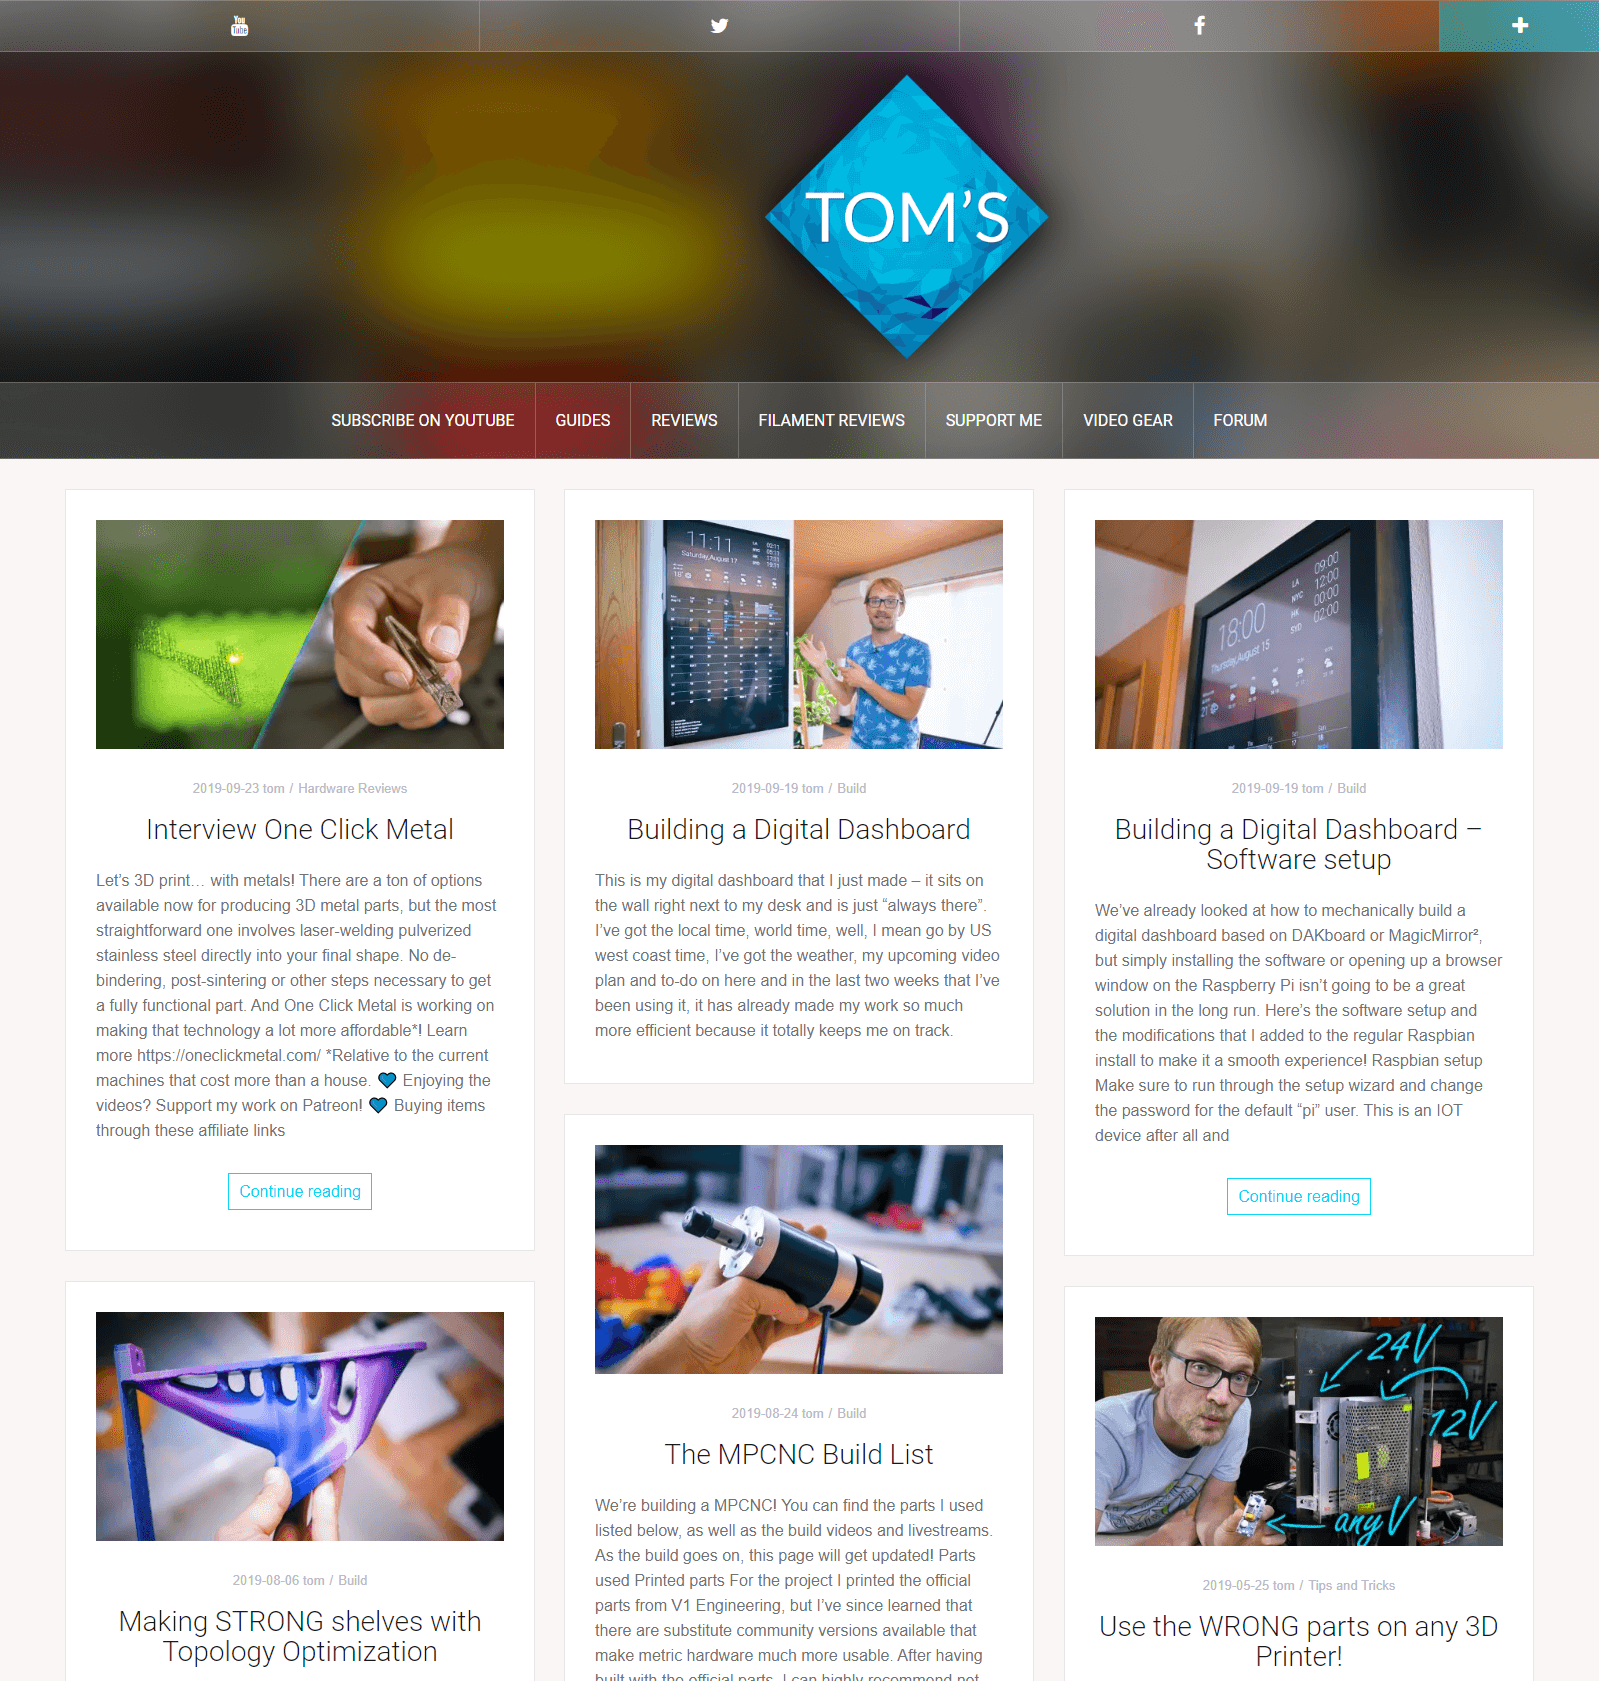 toms3d.org website